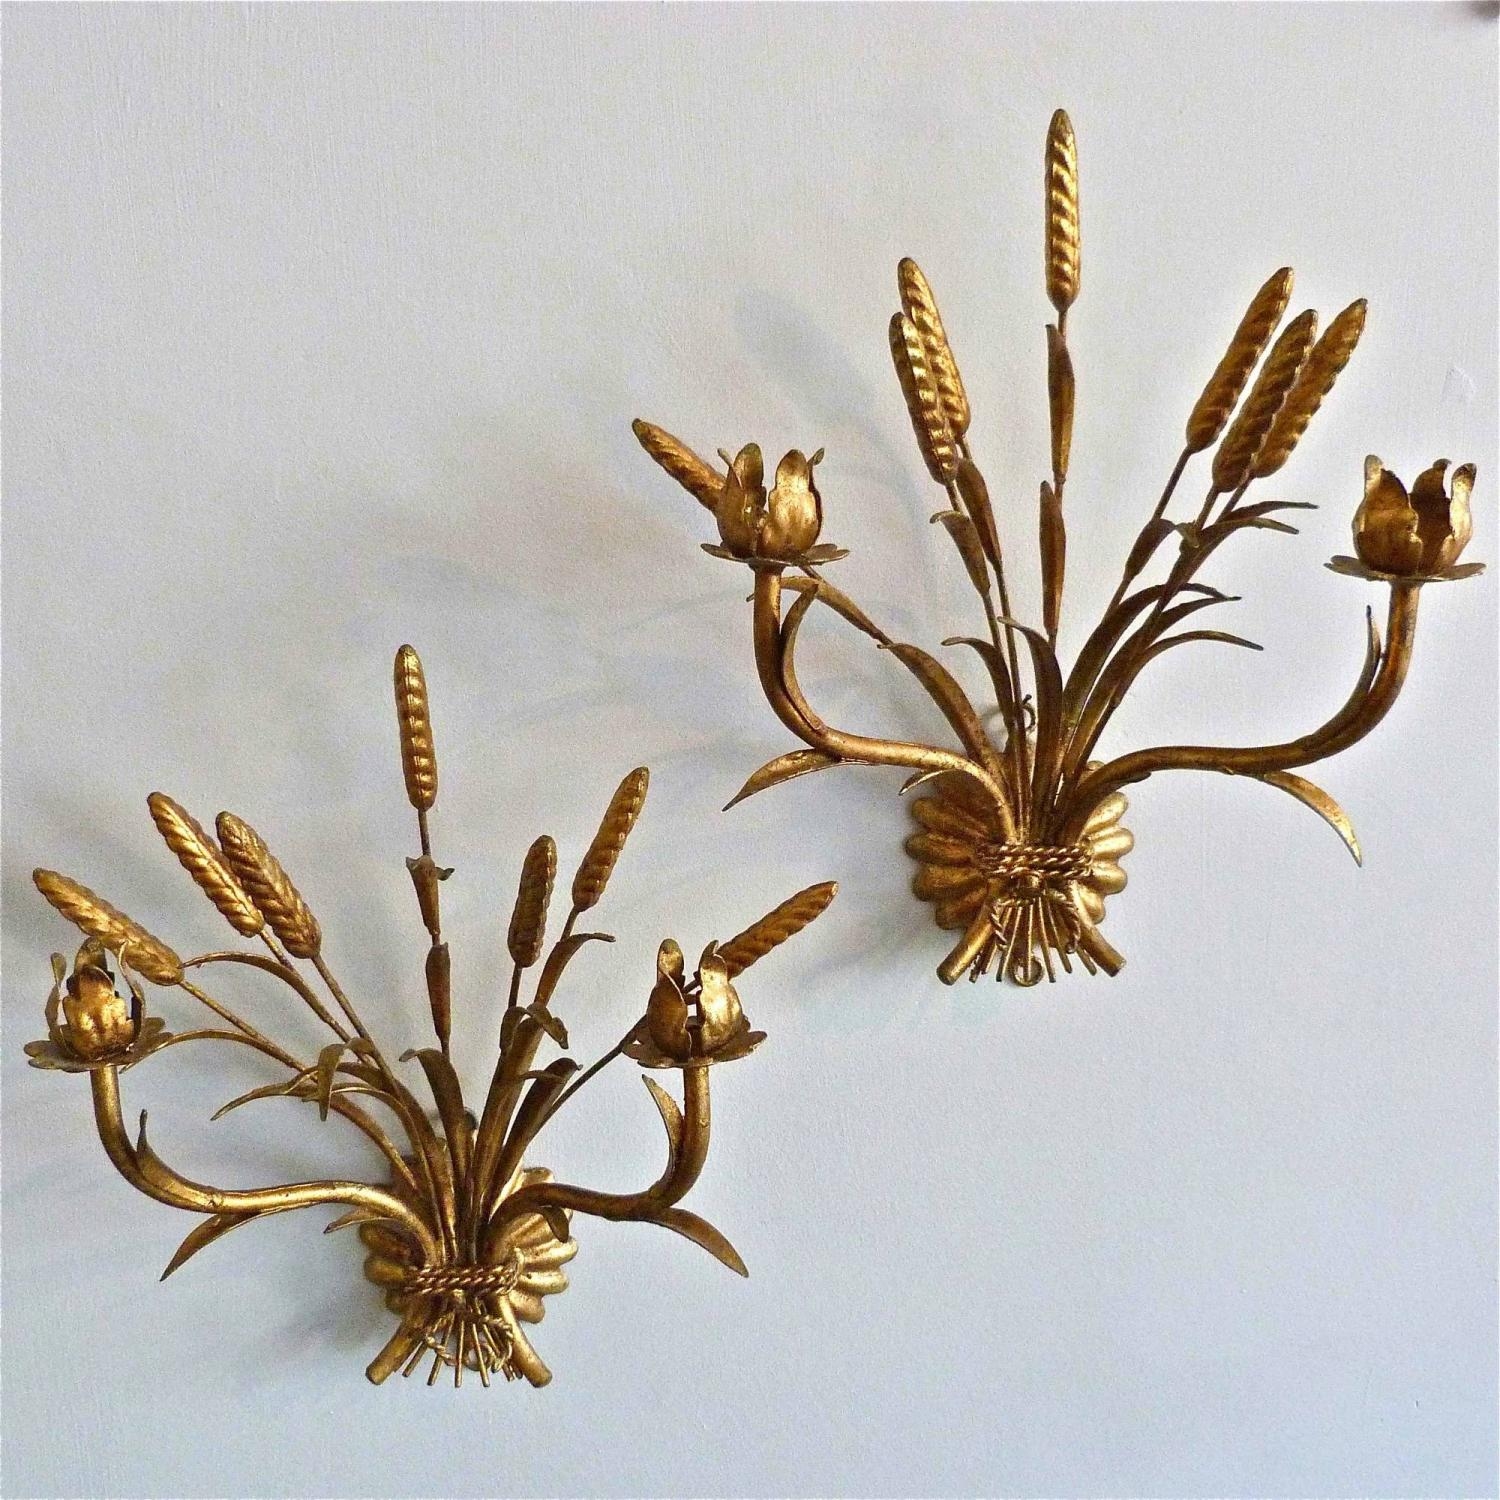 PAIR OF VINTAGE ITALIAN WHEATSHEAF WALL SCONCES